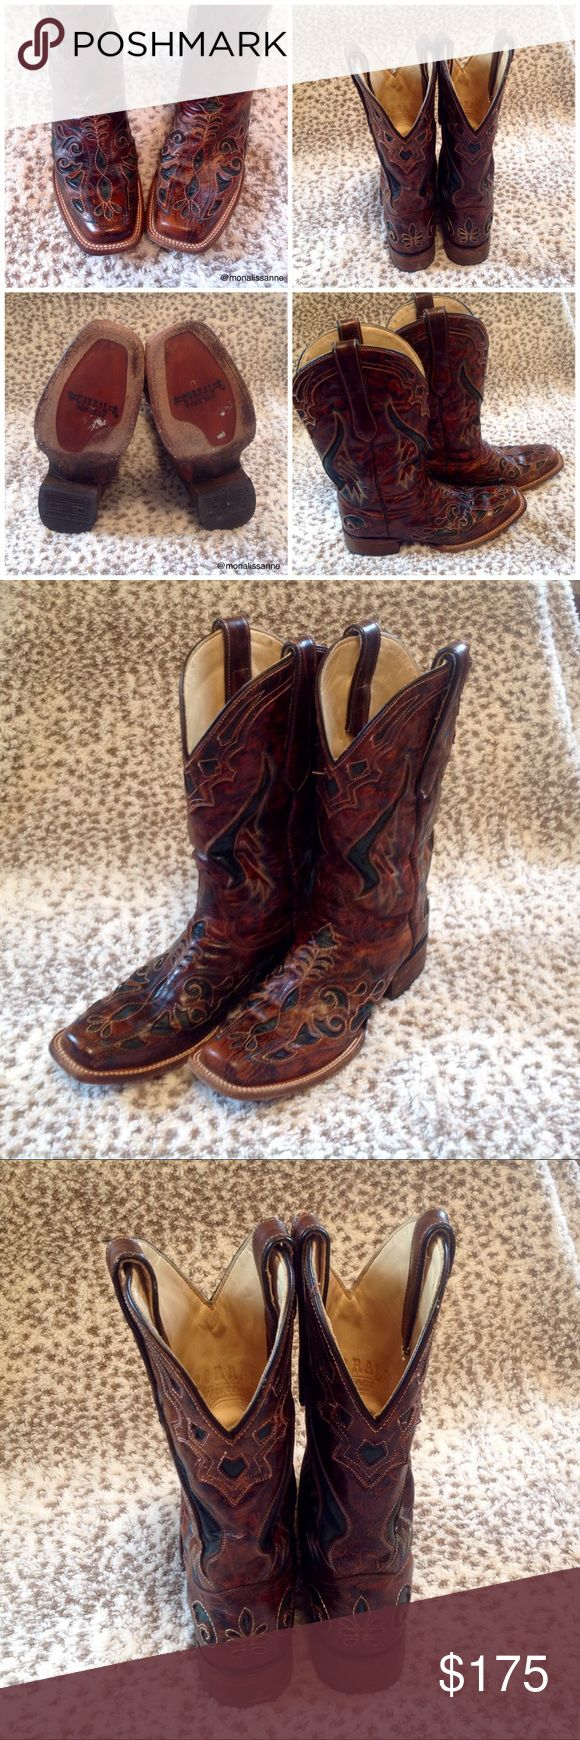 Corral Vintage Boots Worn a few times. Cleaned and conditioned with leather lube. Brown with dark turquoise insets. These are beautiful in person! Size 9 1/2 M. Corral Vintage boots are made from real leather. Corral Vintage Shoes